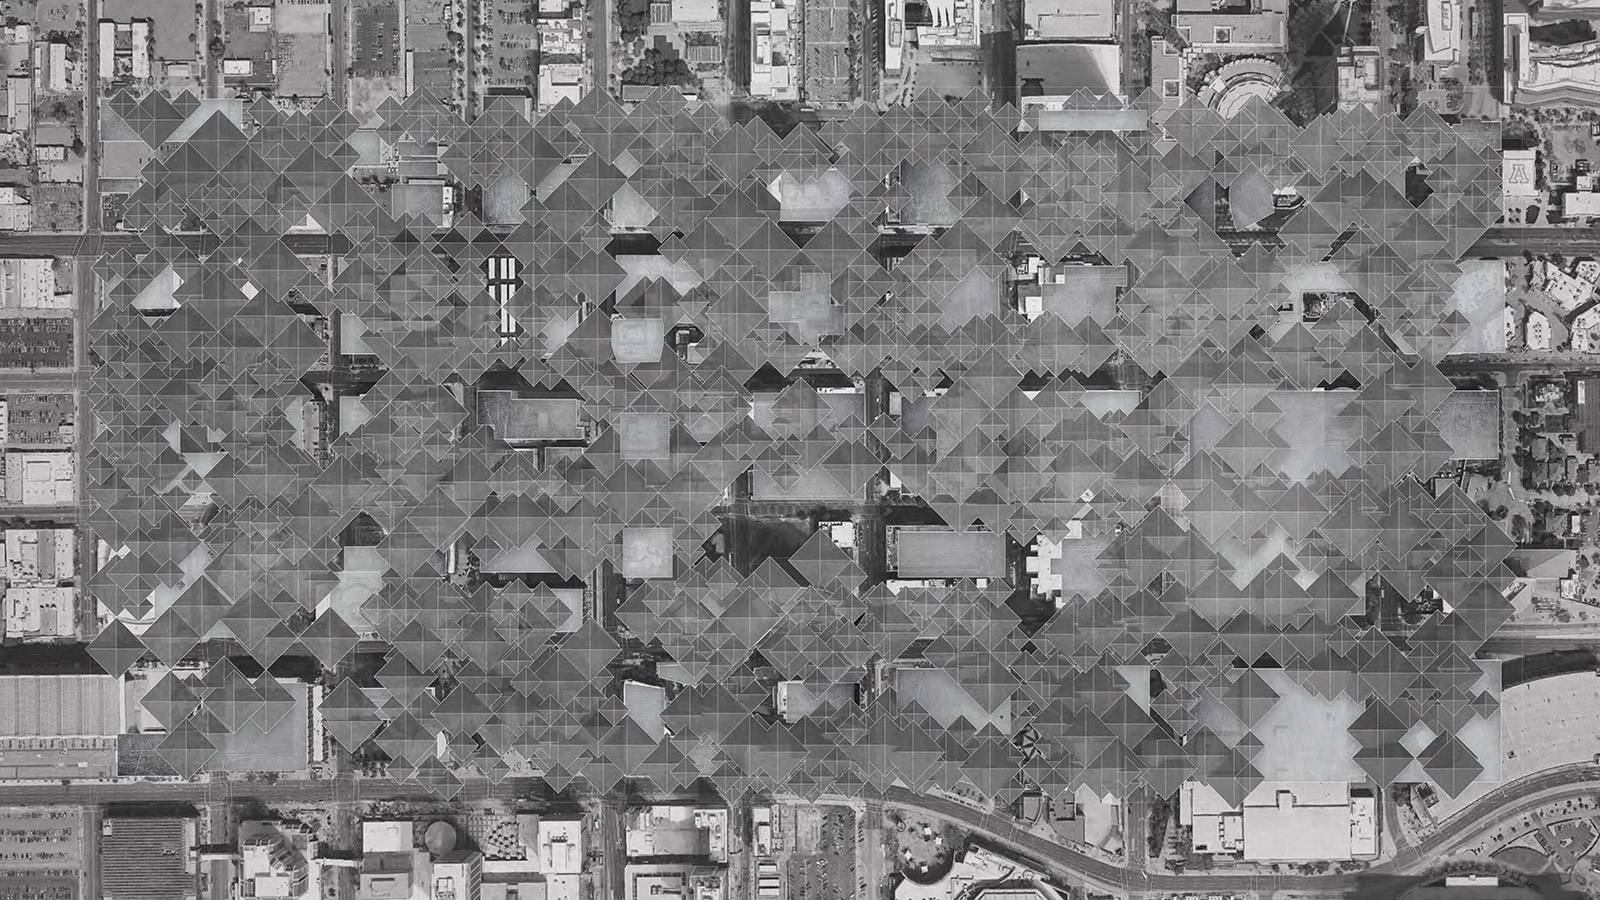 Urban plan of downtown Phoenix showing the future housing infrastructure cloud above the city by student Brennan Richards